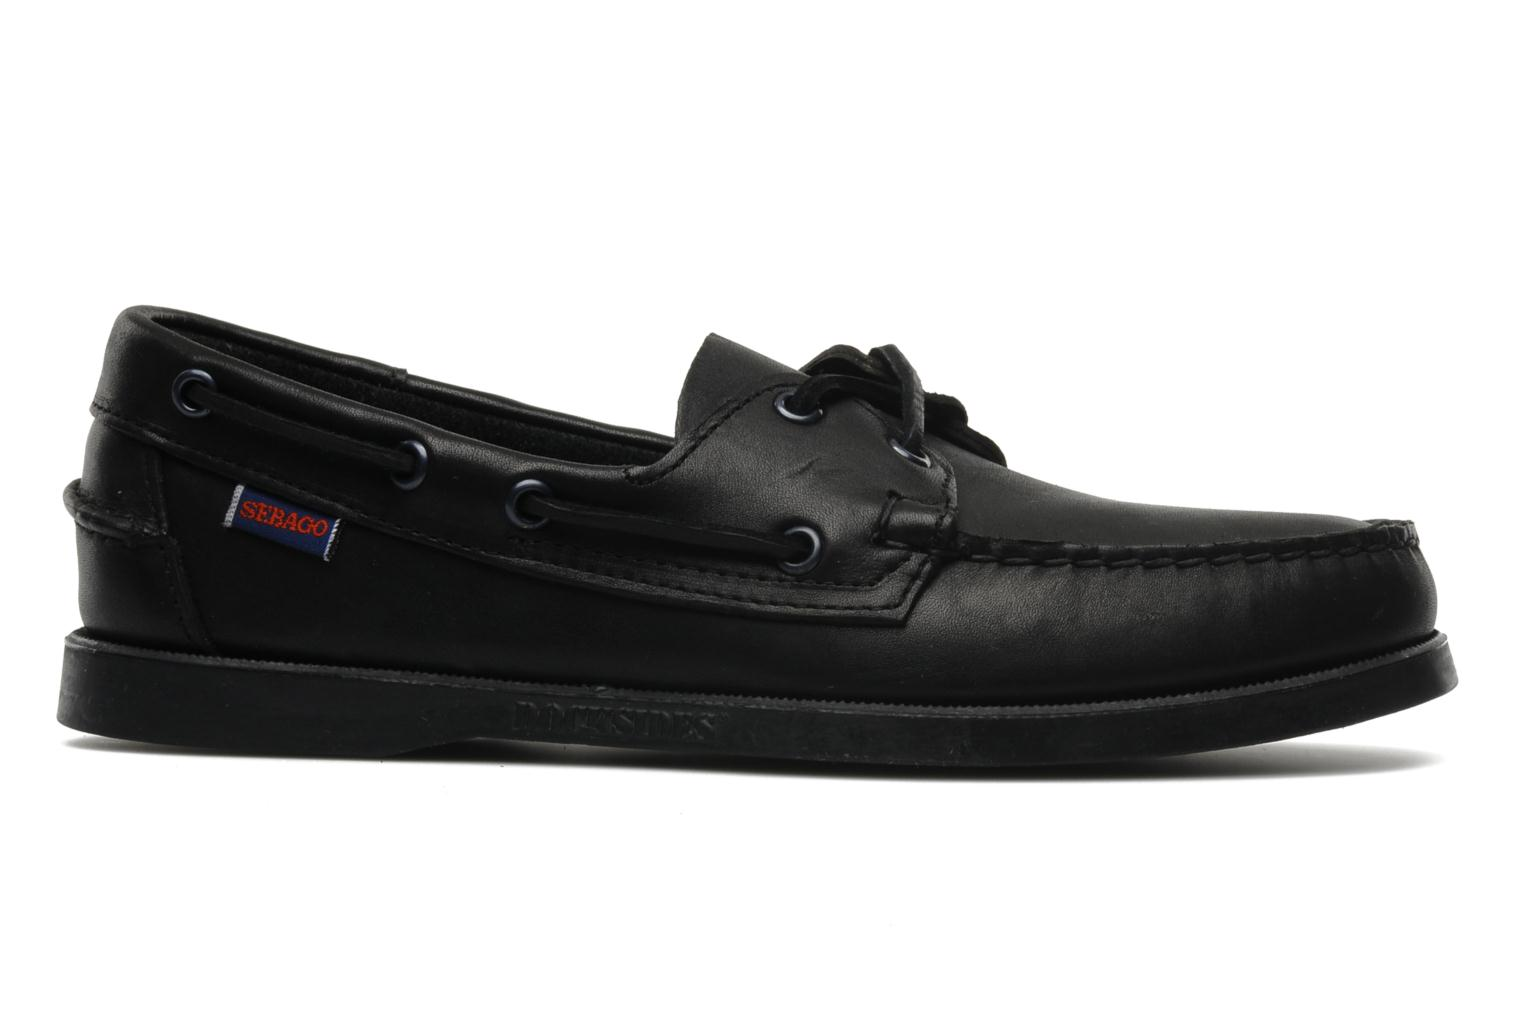 Docksides M Black leather